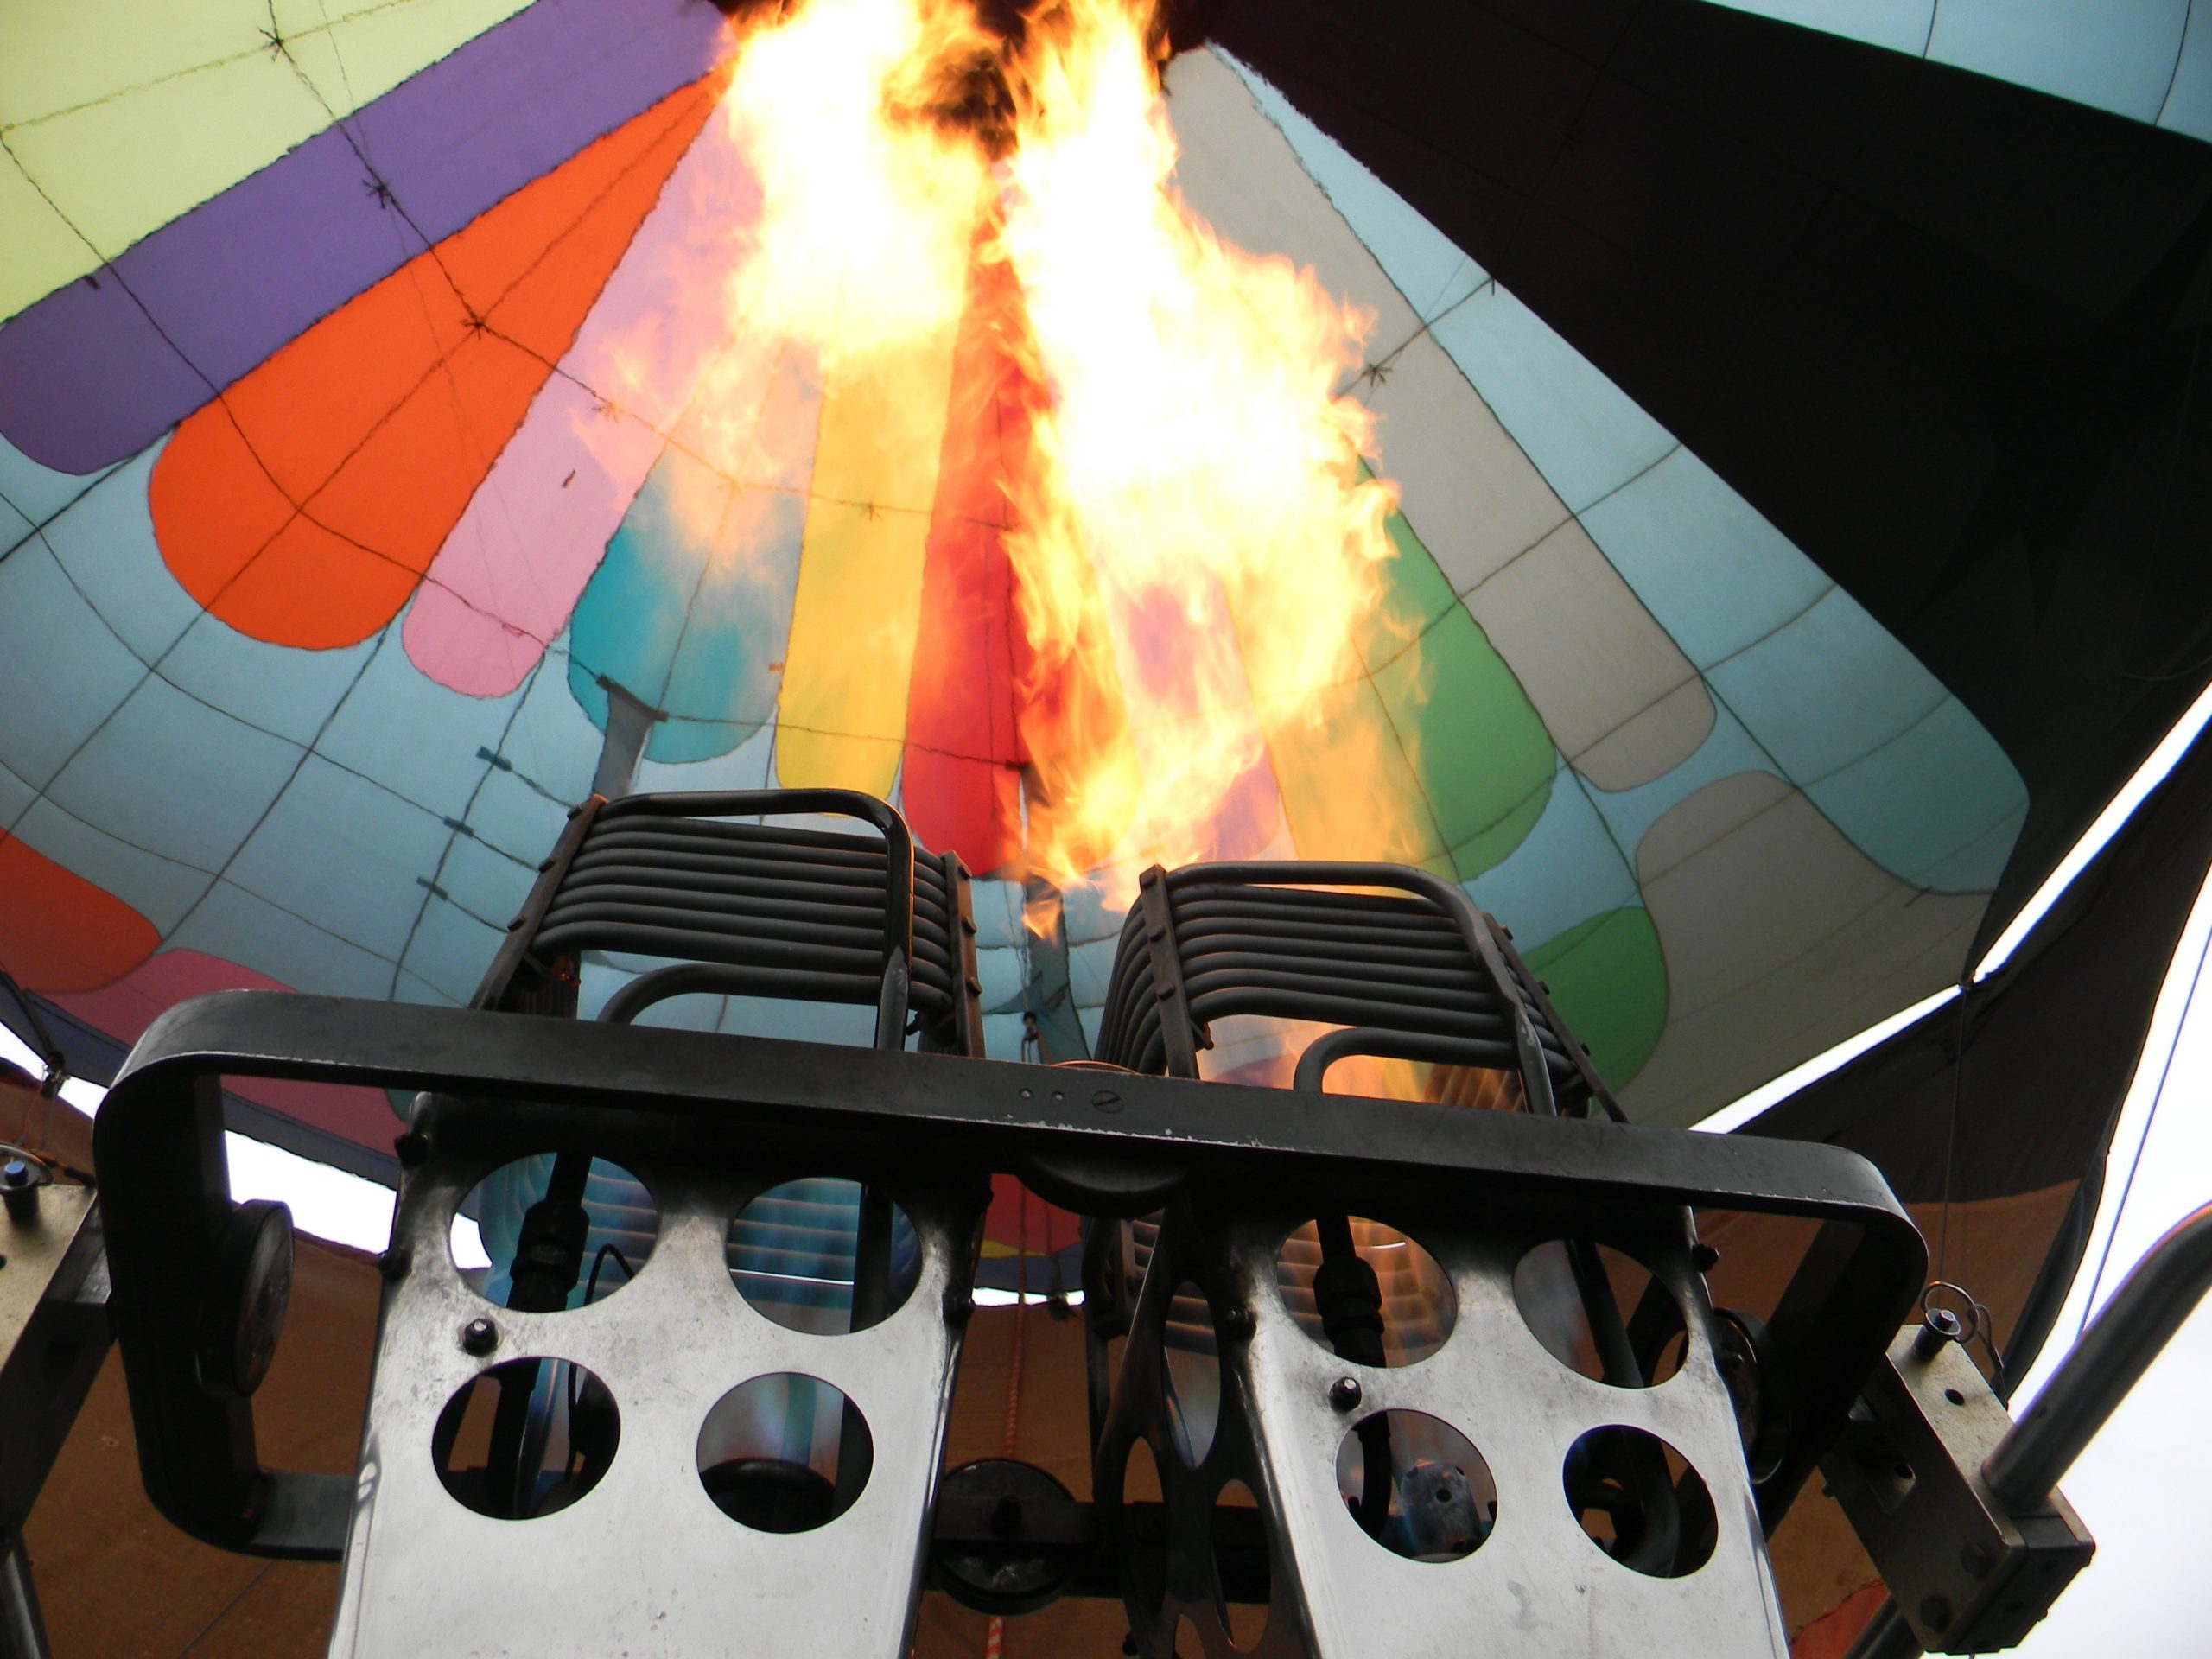 a photo of the inside of a hot air balloon